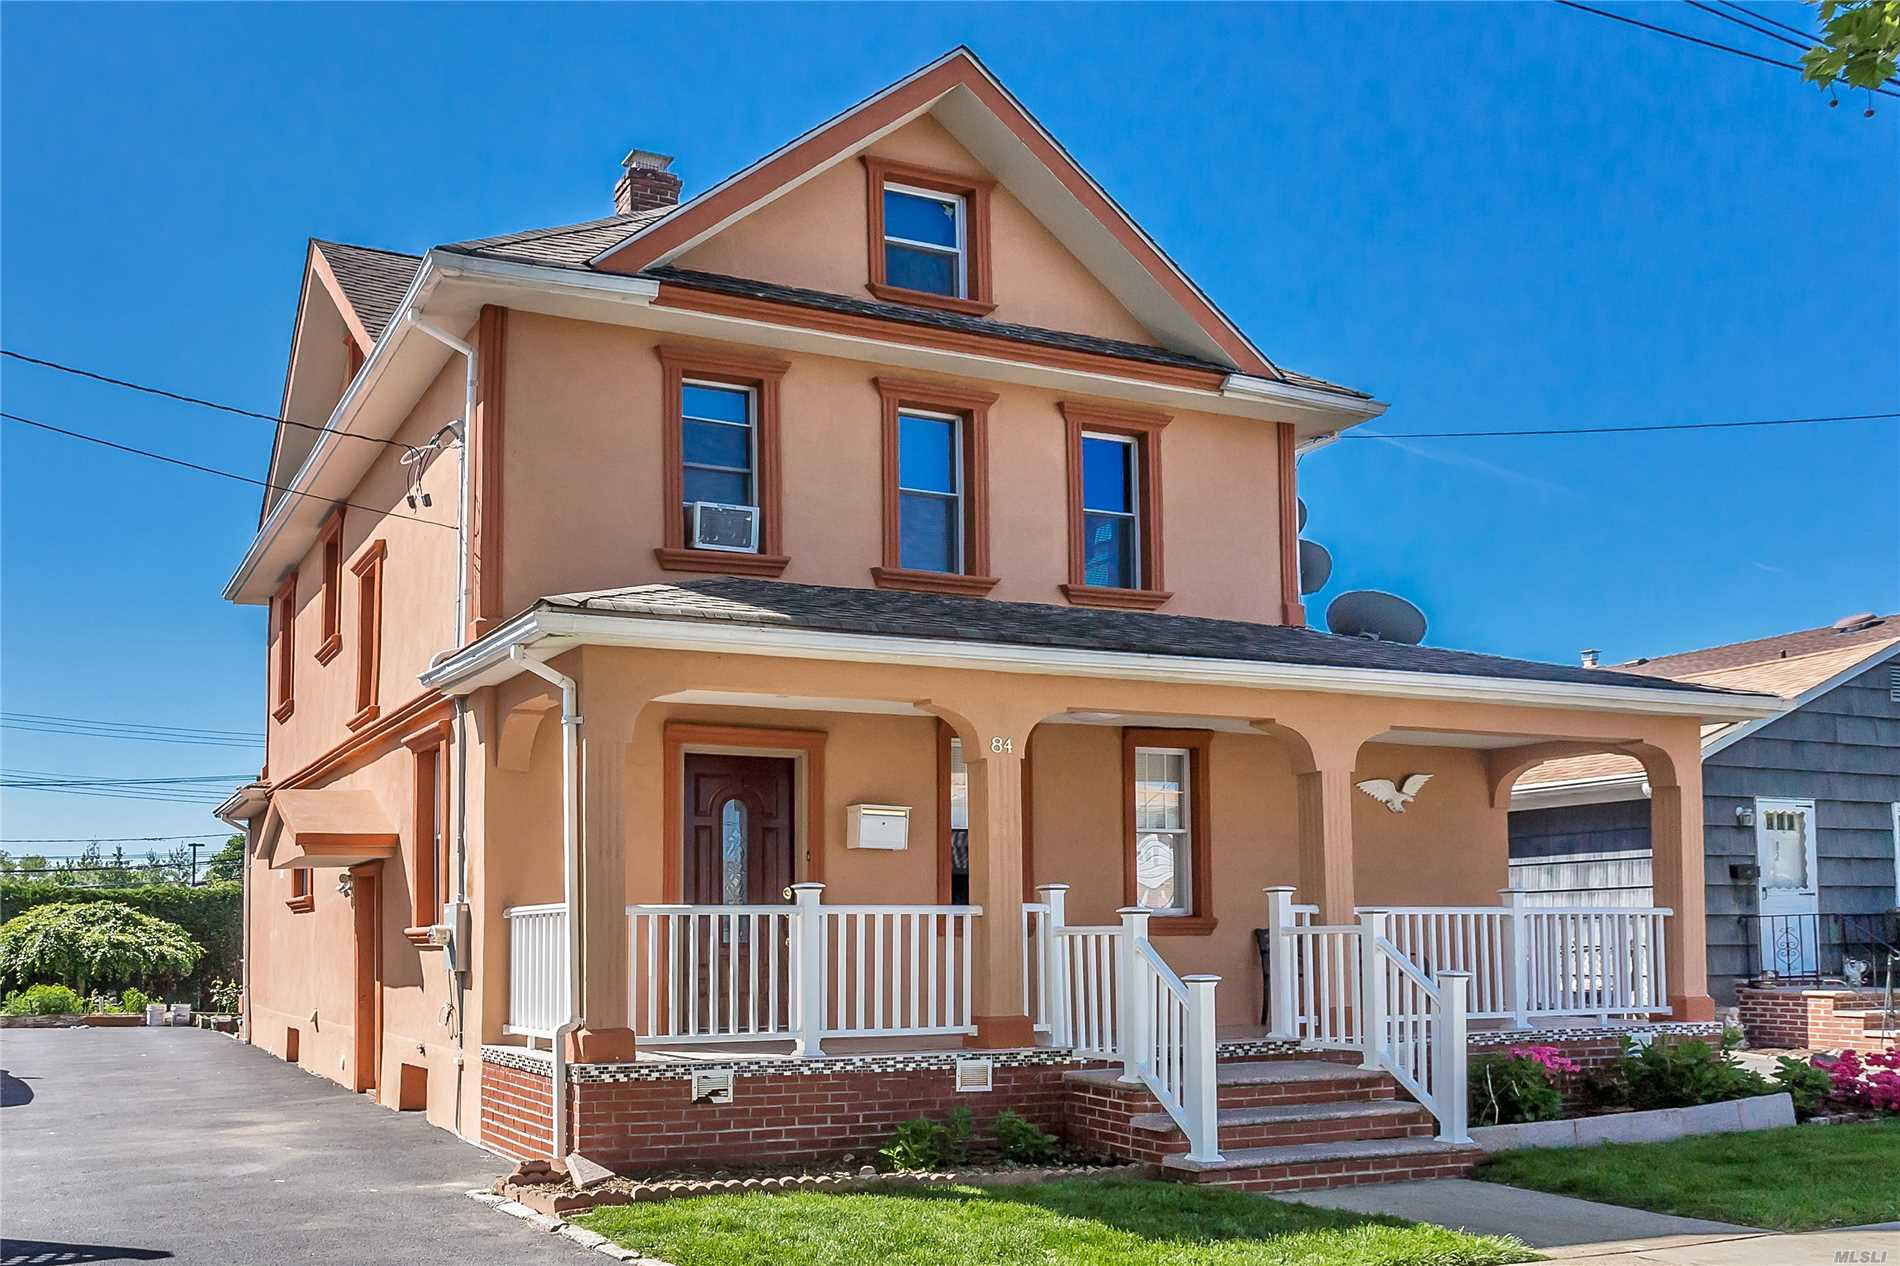 All Renovated, 4 Bedroom Colonial Move-In Condition. Close To All Amenities. Minutes To Garden City, Fpk, And Close To Parkways.